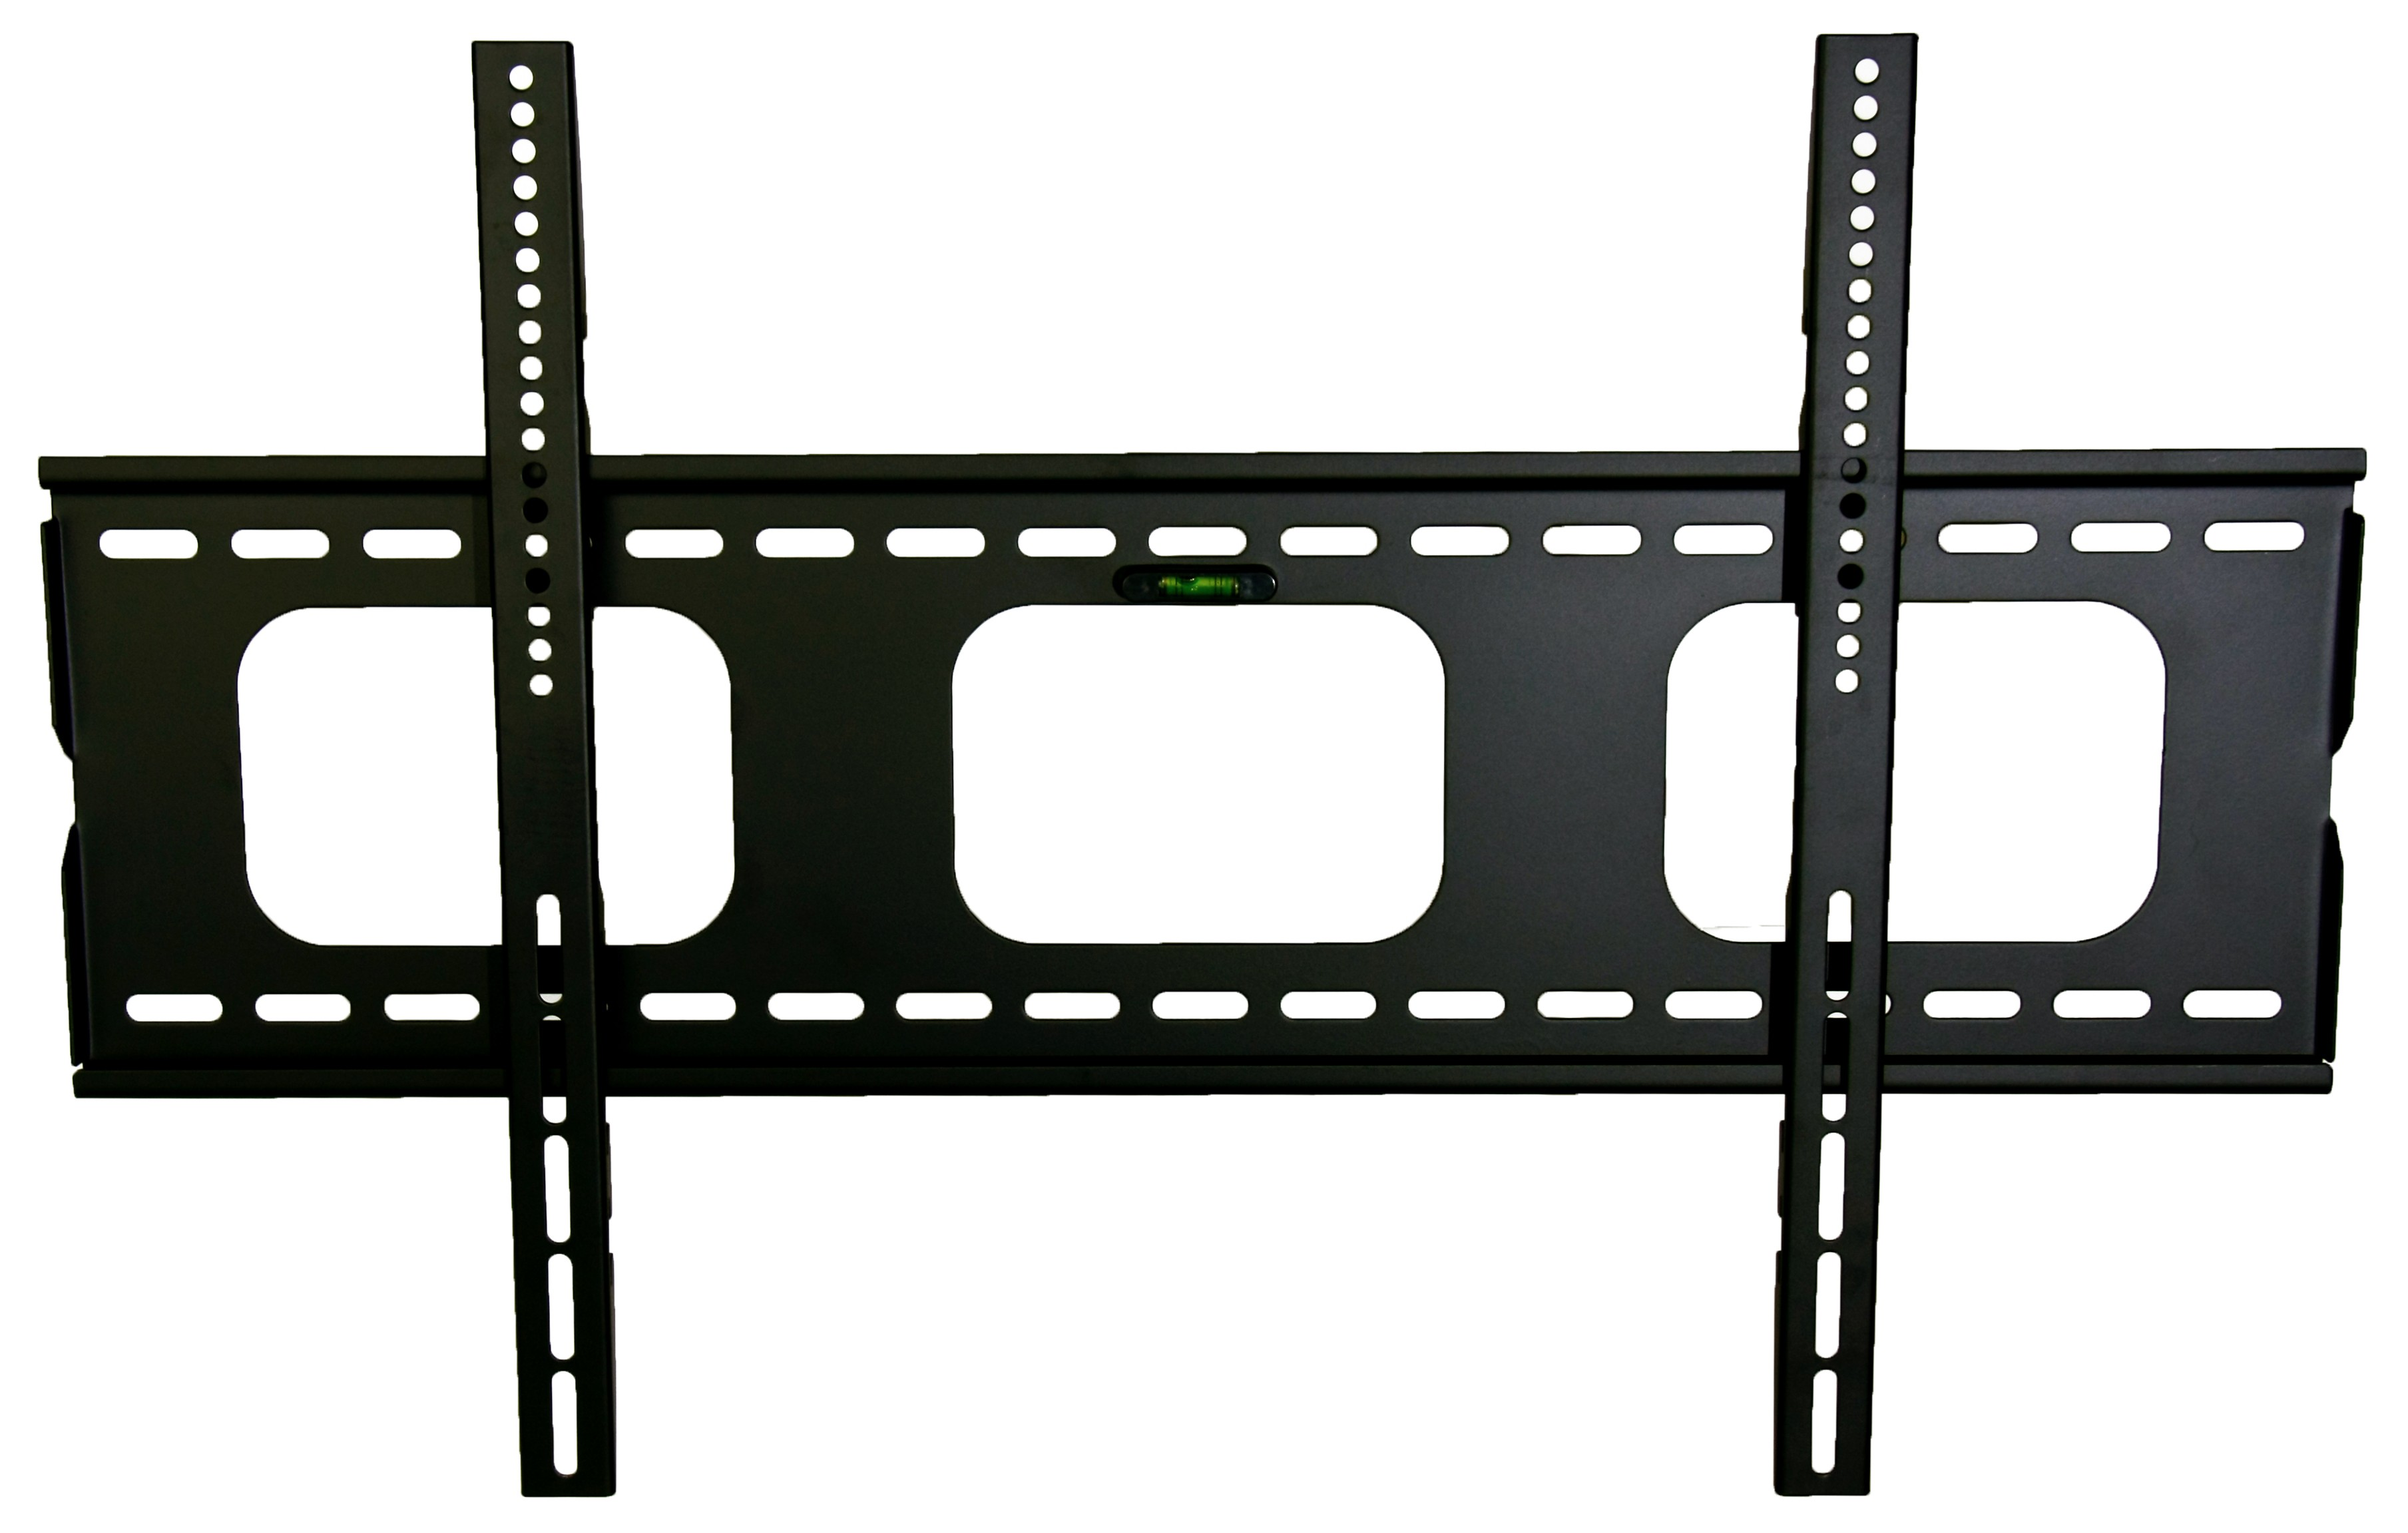 mountit premium tv wall mount for flat screen tvs fixed low profile